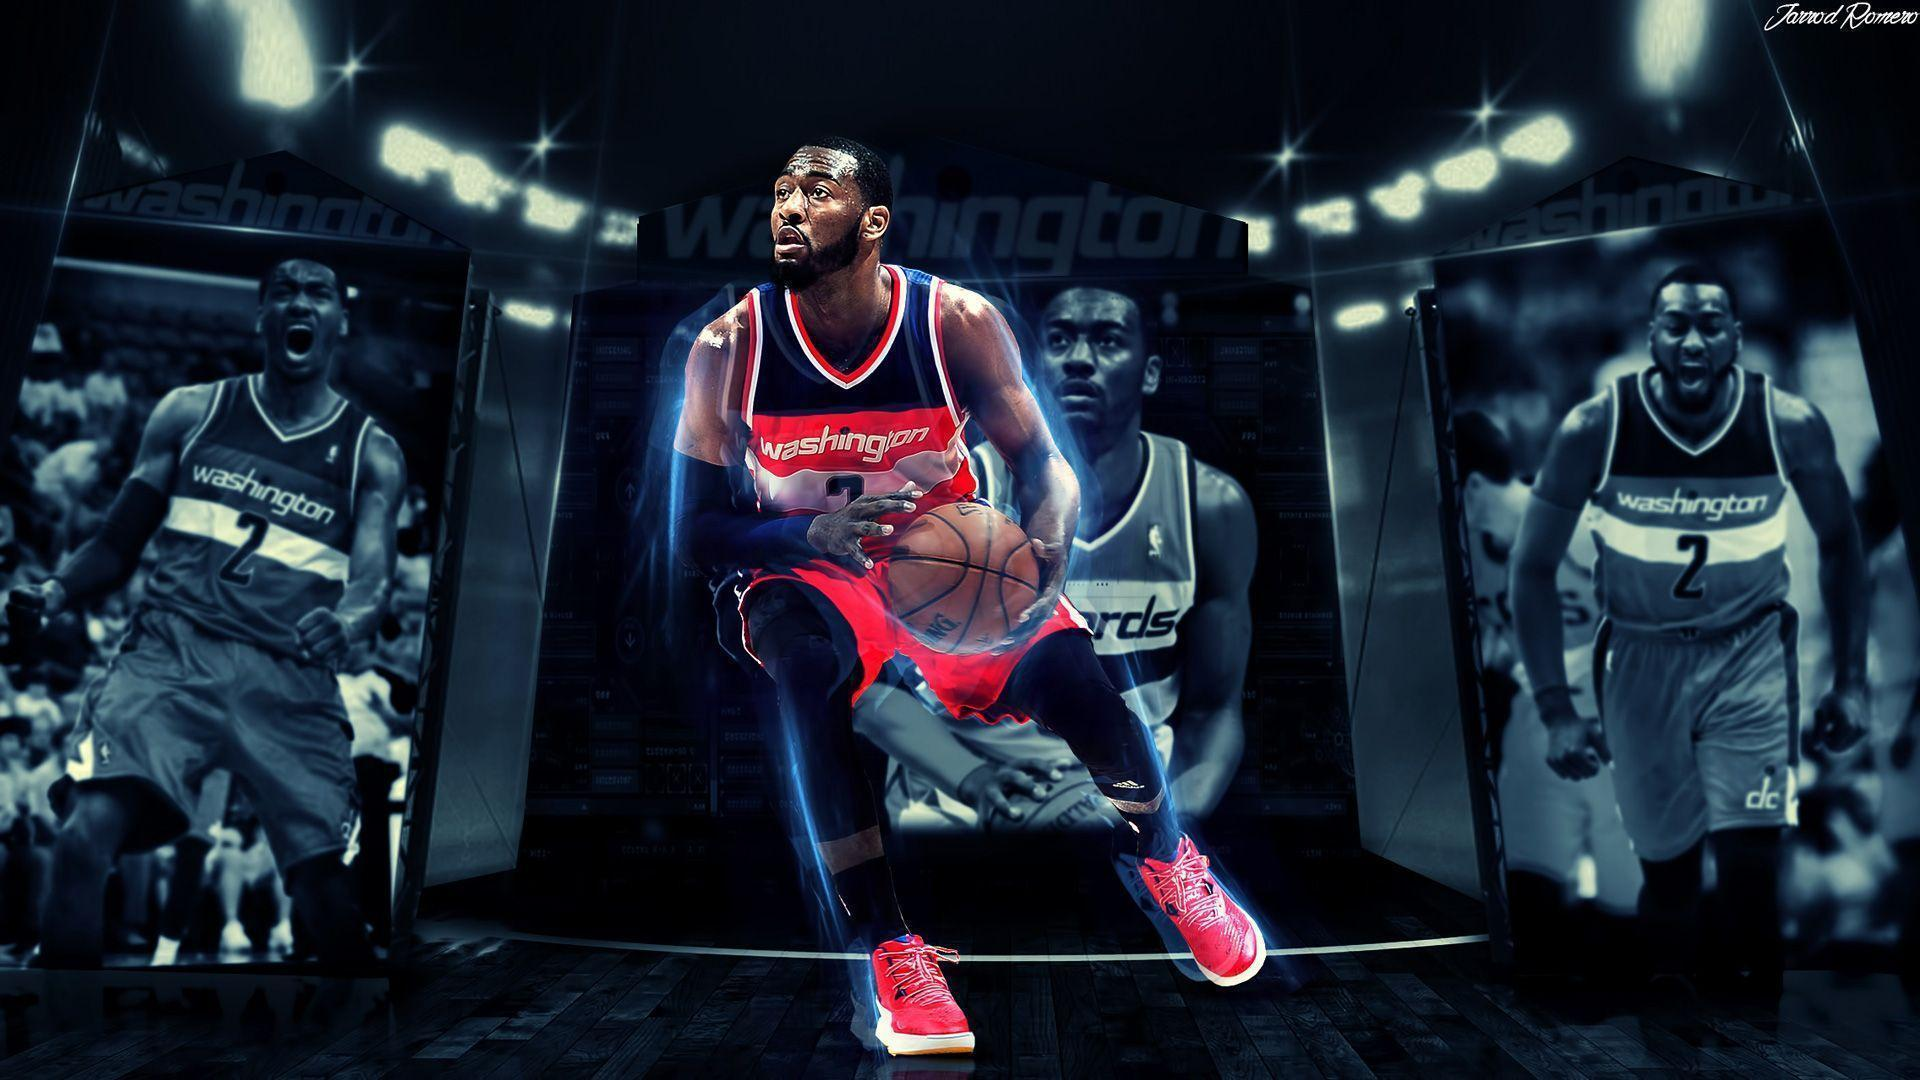 John Wall Wizards 2015 1920×1080 | Basketball Wallpapers at ...